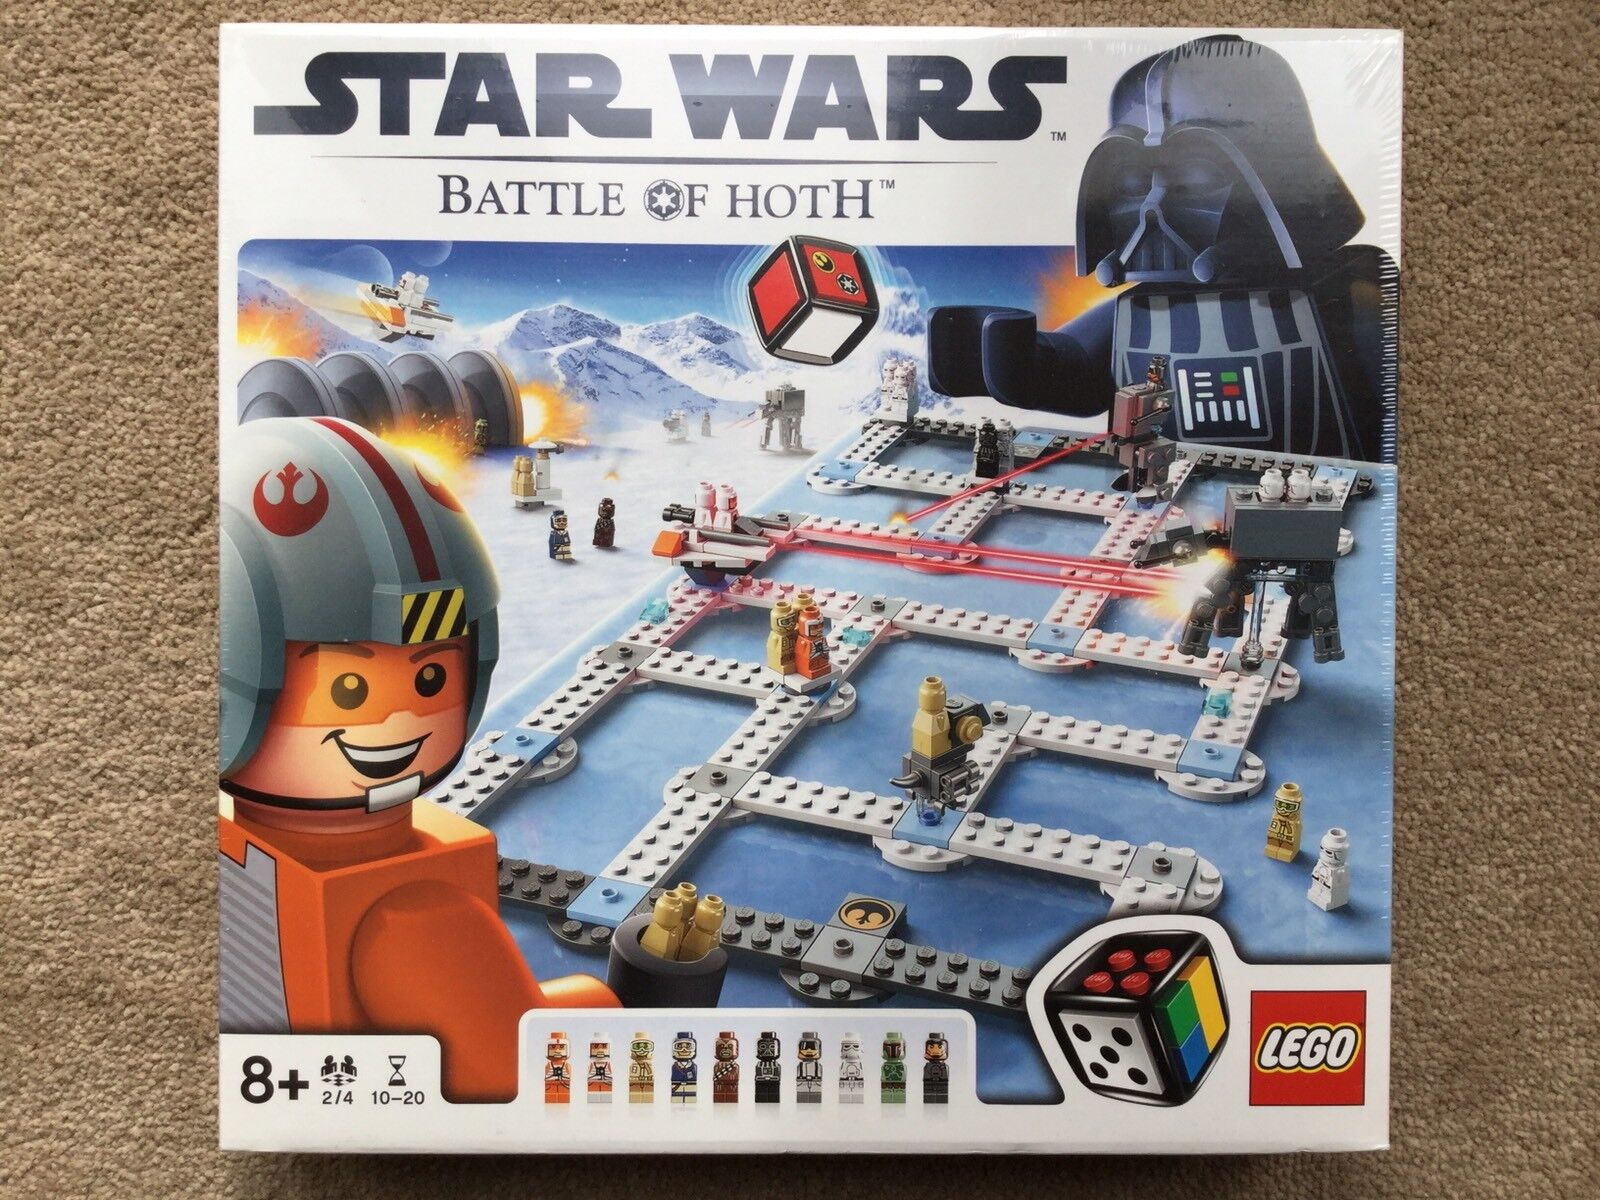 Lego Star Wars 3866 Battle Of Hoth Hoth Hoth Board Game - NEW & SEALED f534c8